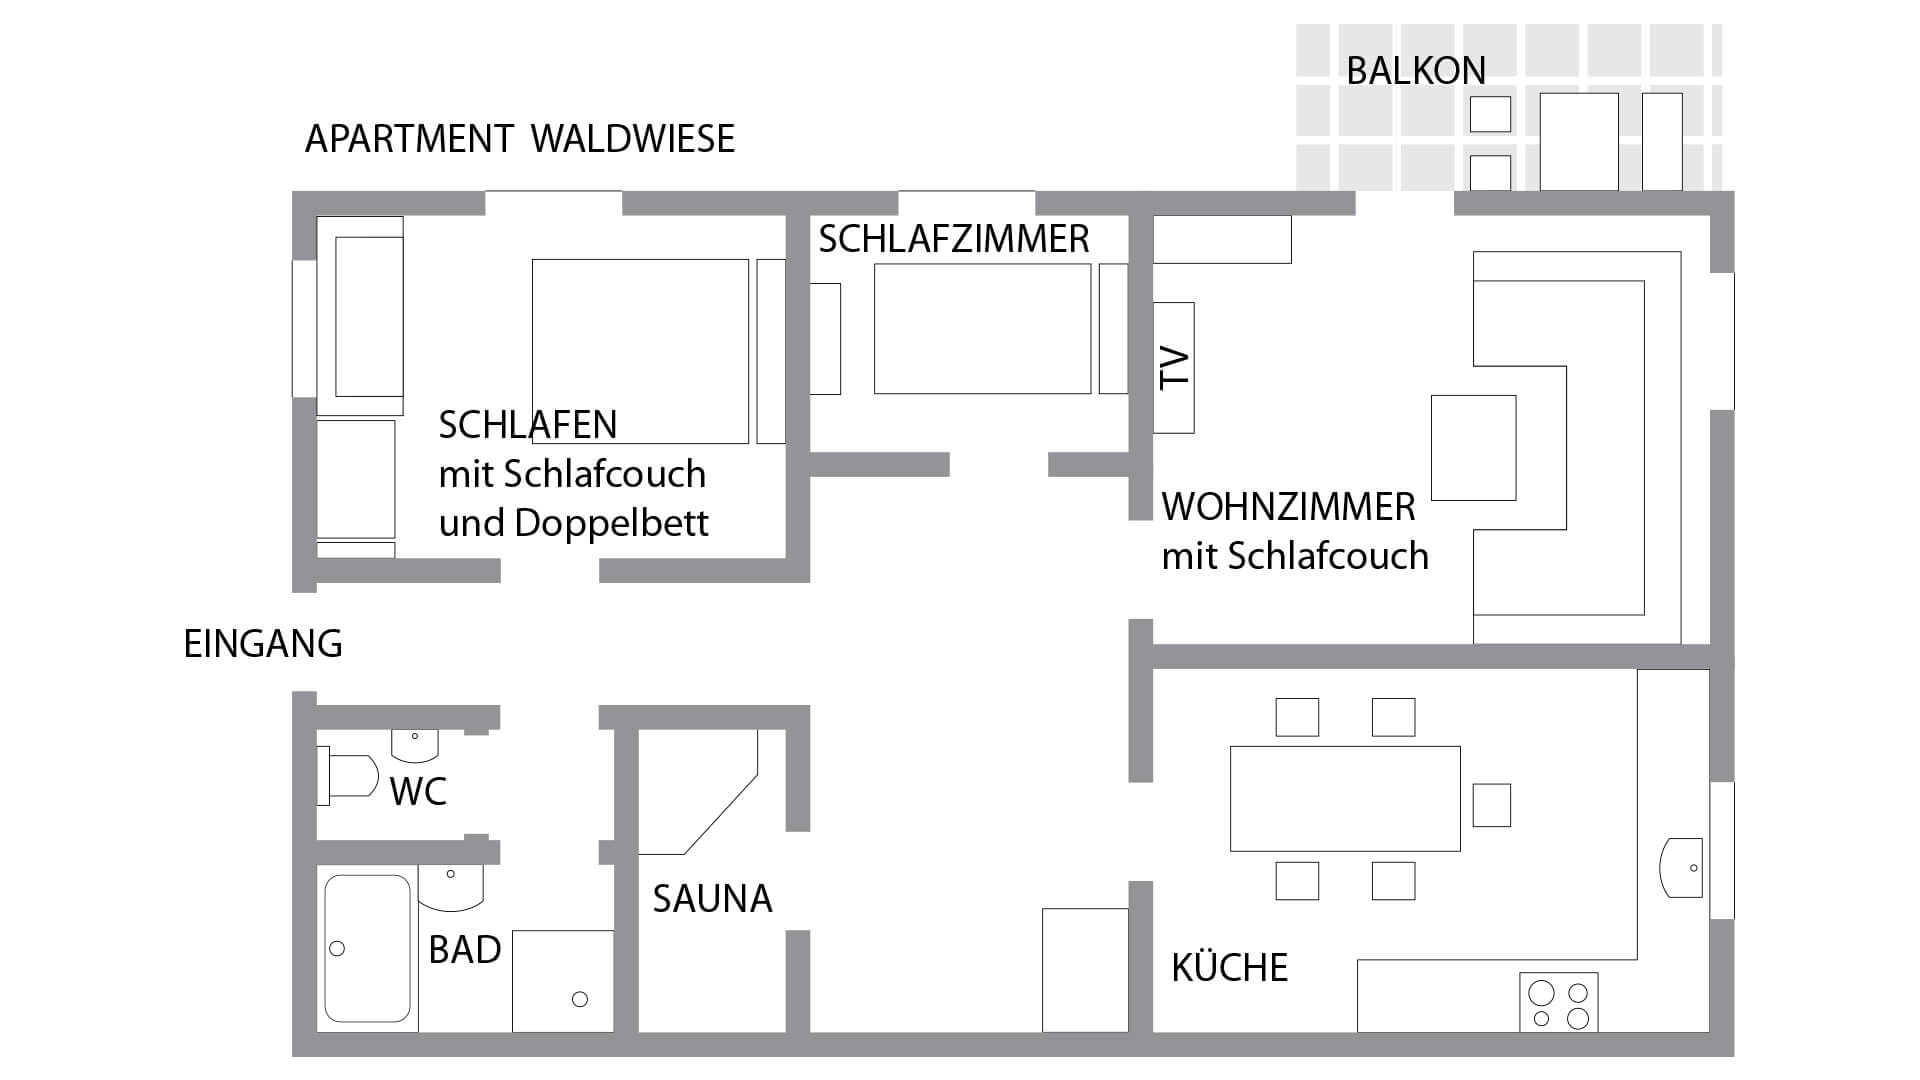 Grundriss des Wellness-Apartments Waldwiese